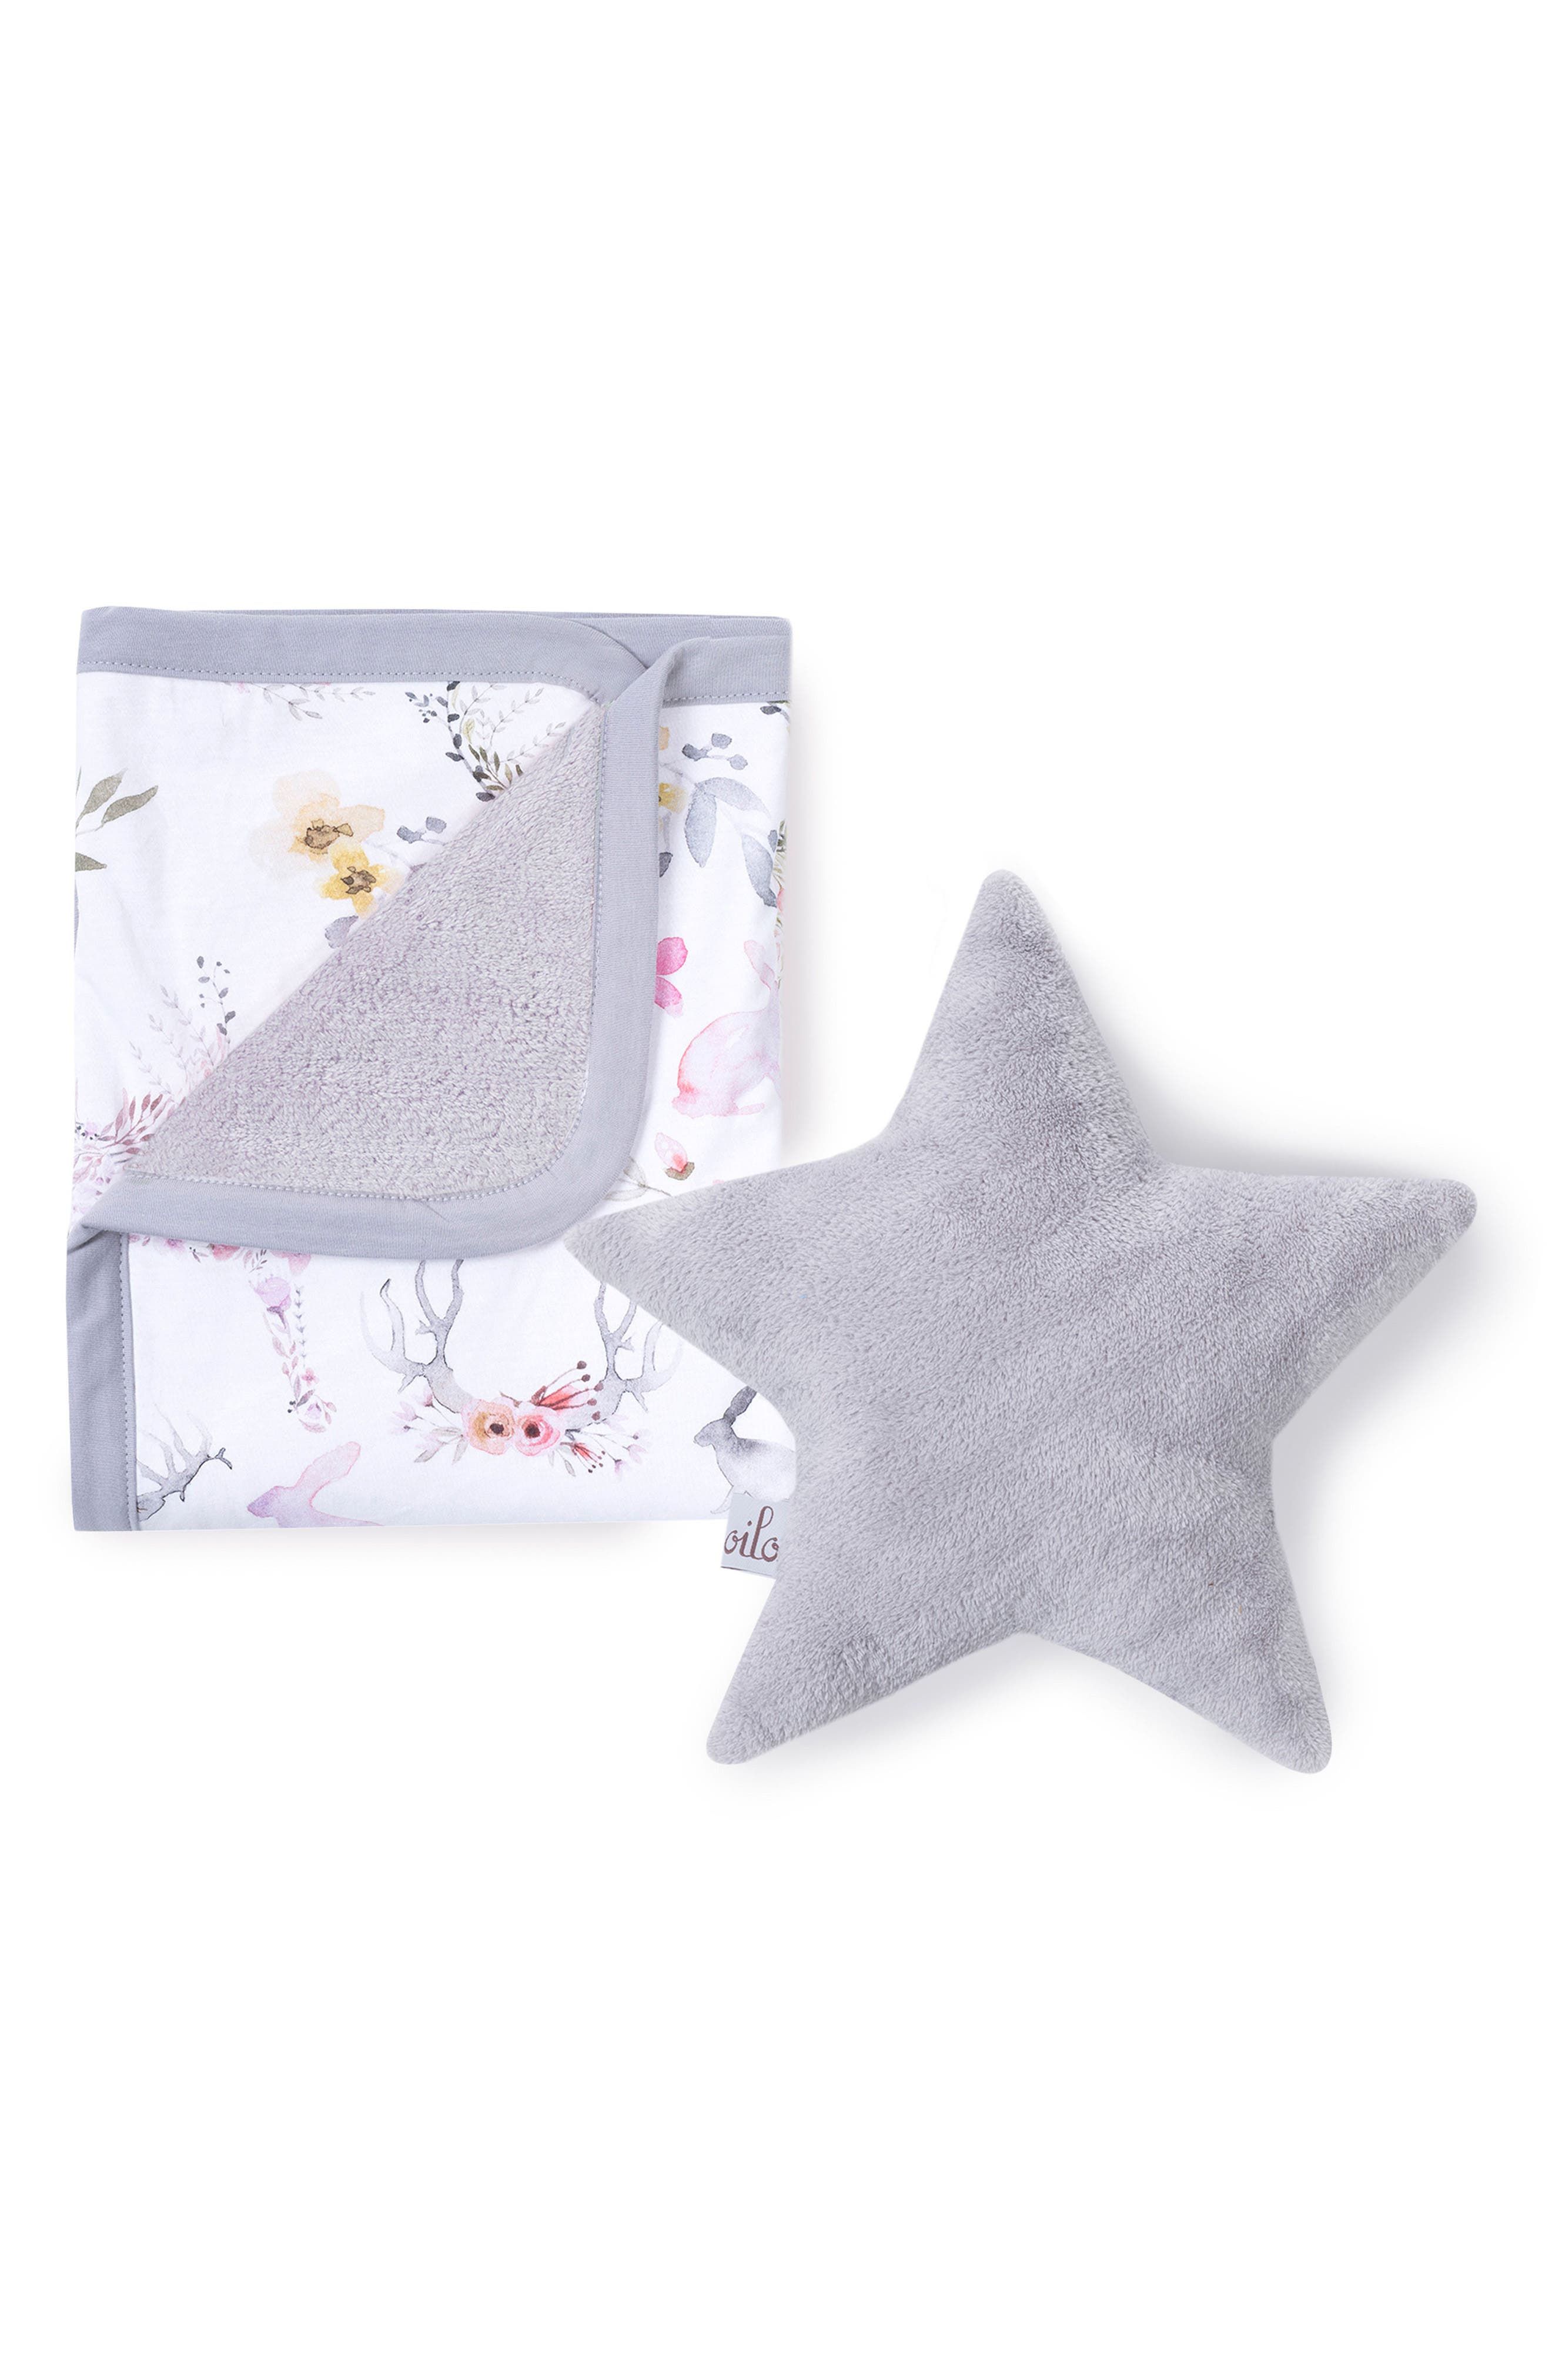 Fawn Cuddle Blanket & Star Pillow Set,                             Main thumbnail 1, color,                             FAWN